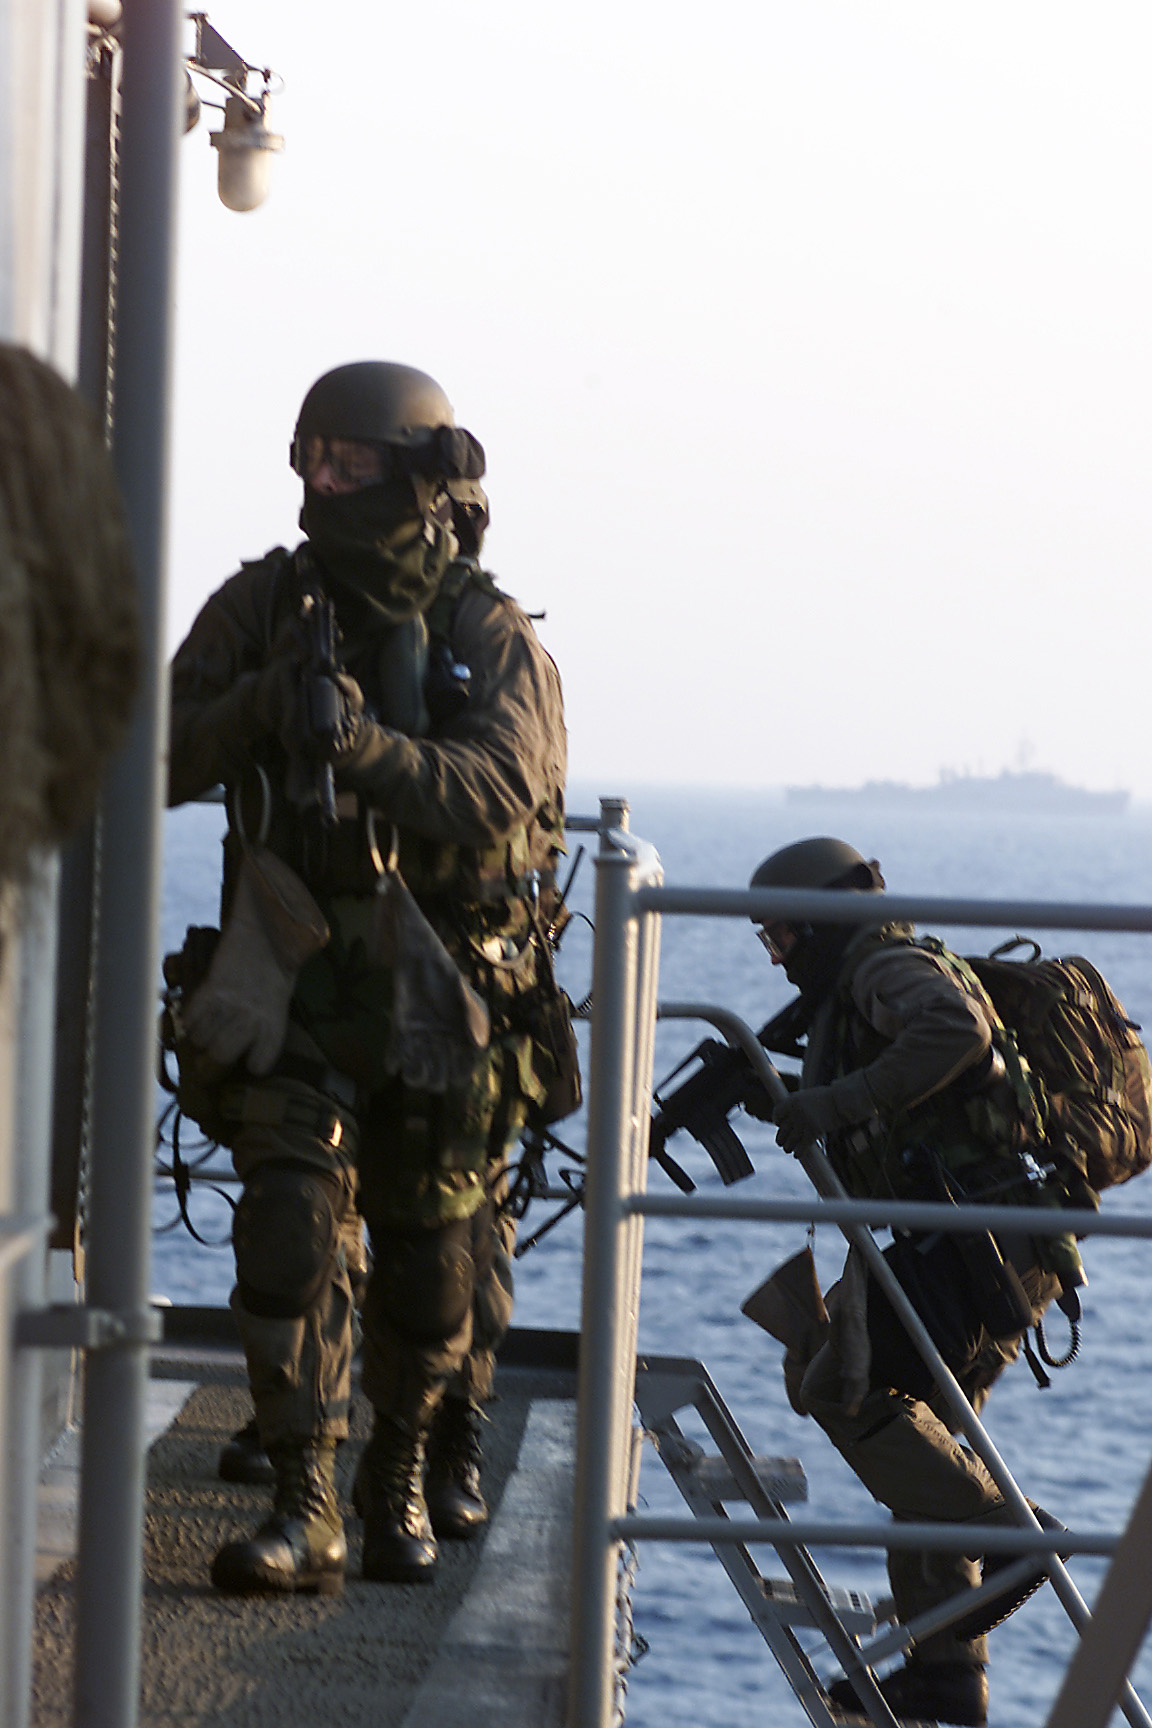 FORECON_VBSS_training 1152x1728px.jpg